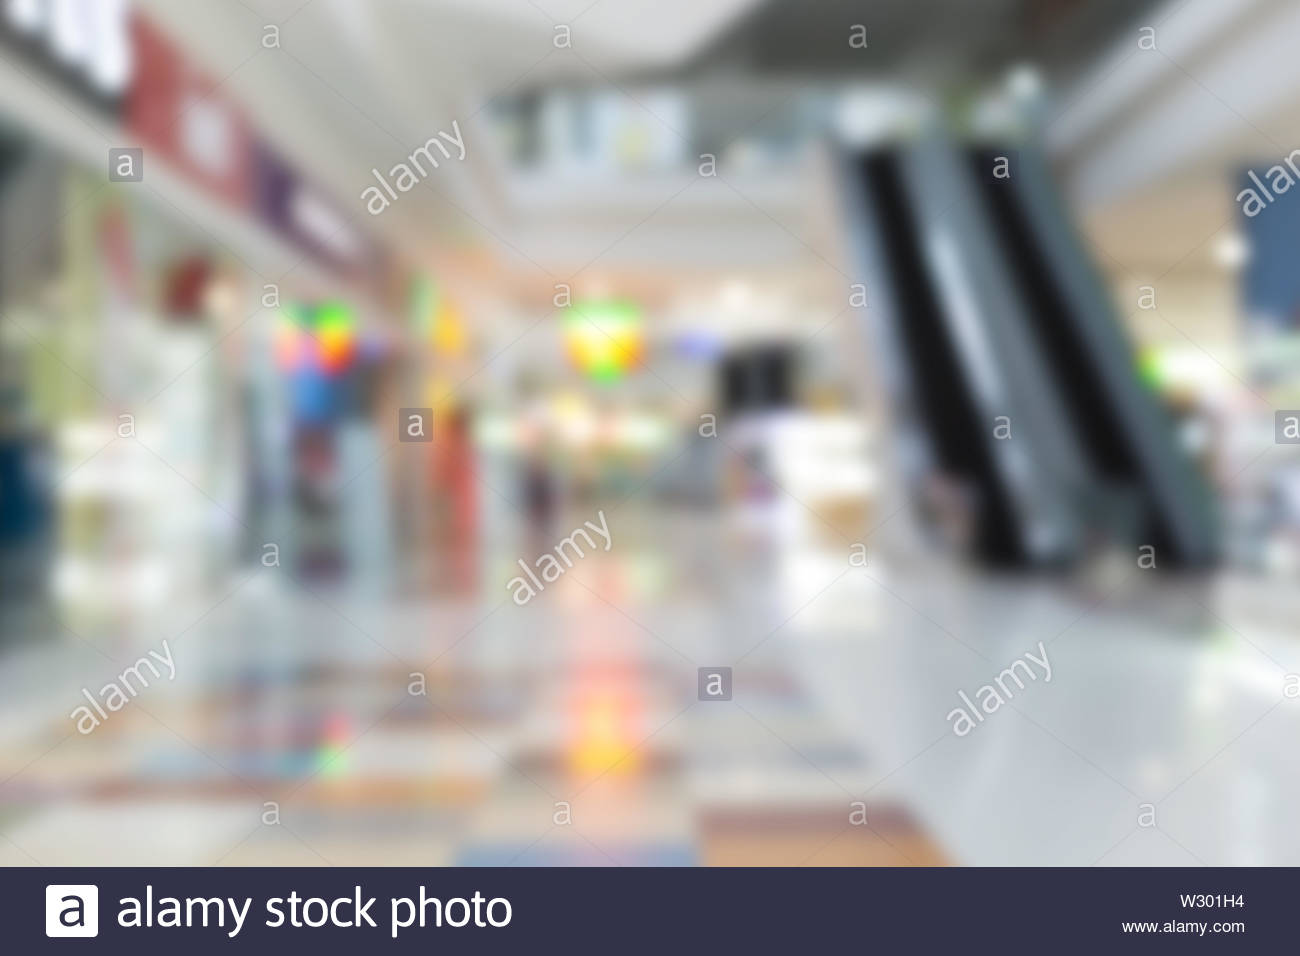 Blurred shopping mall and retail store interior background. - Stock Image